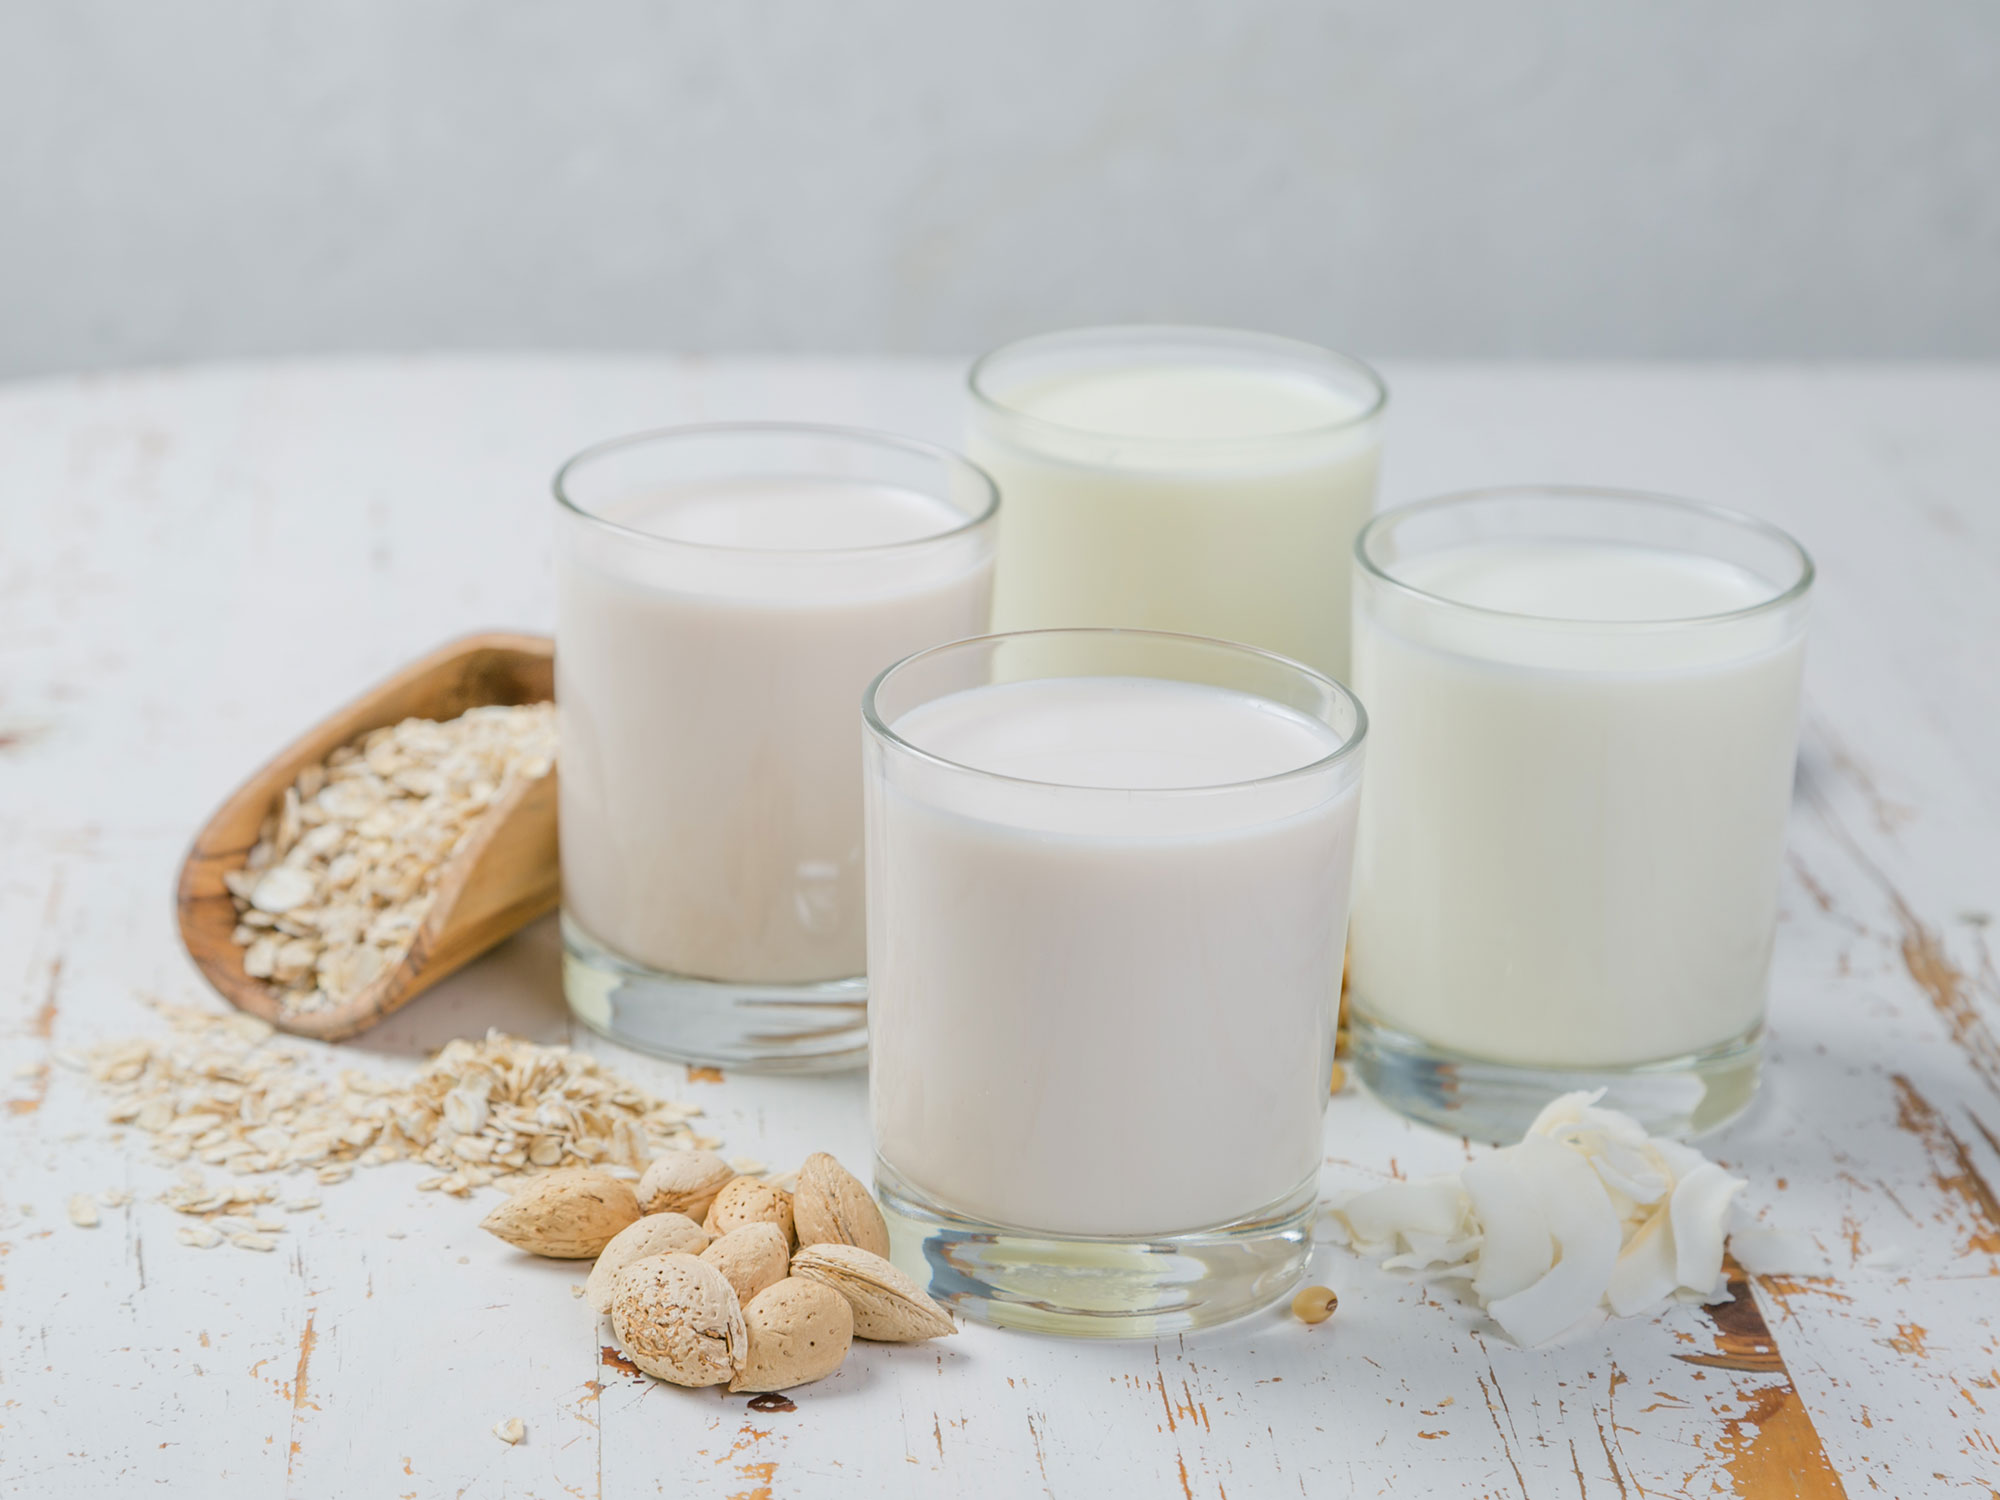 Is It Cheaper to Make Your Own Non-Dairy Milk?